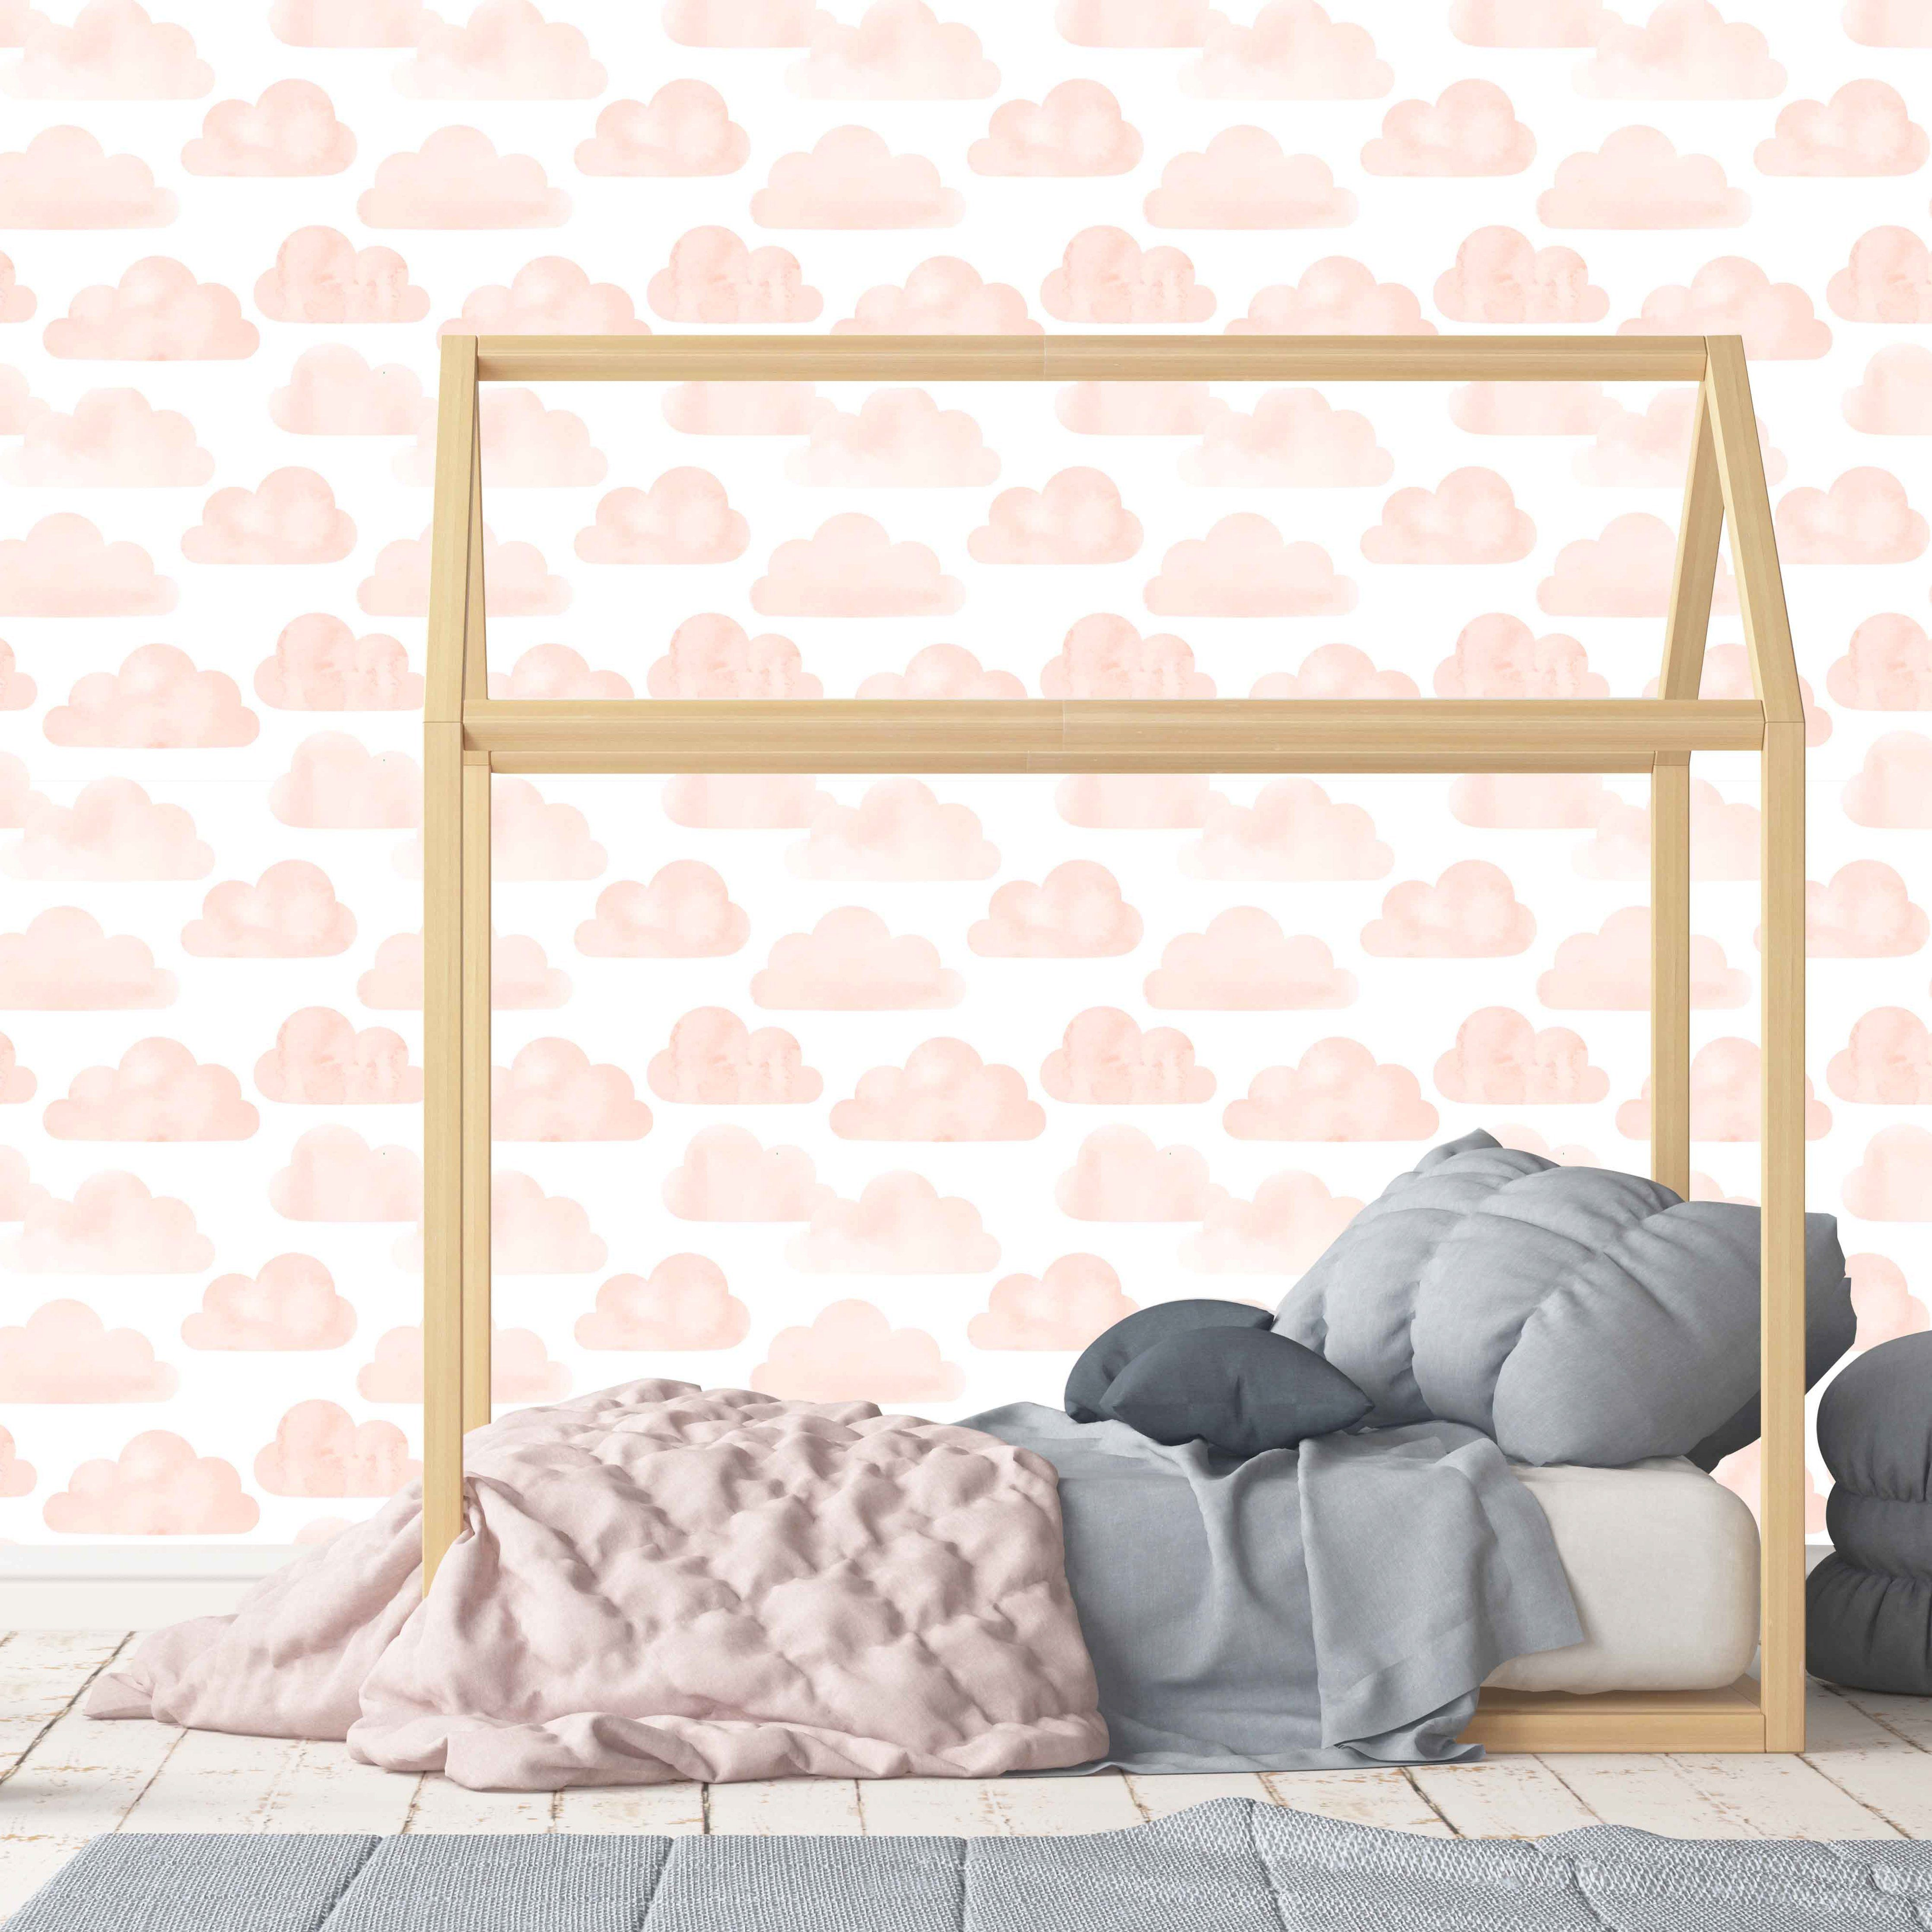 Skylar Wallpaper - Project Nursery